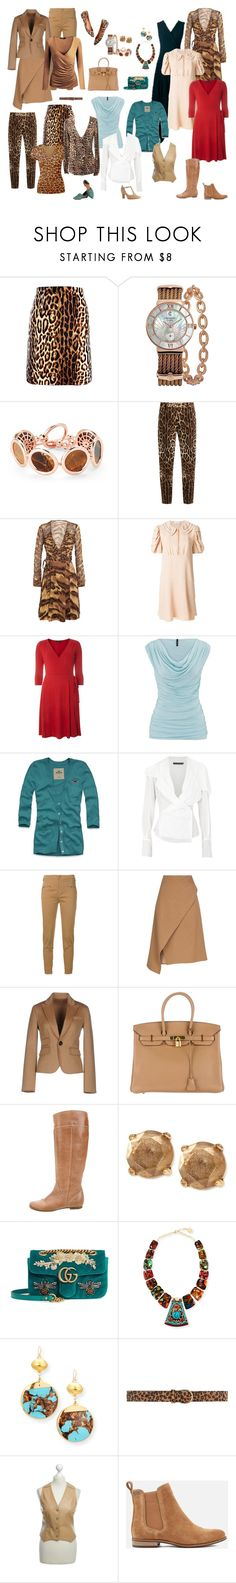 Capsule wardrobe body colors by ketutar on Polyvore featuring мода, Dorothy Perkins, Chloé, Diane Von Furstenberg, Donna Karan, Hollister Co., maurices, Dsquared2, ESCADA and Dolce&Gabbana